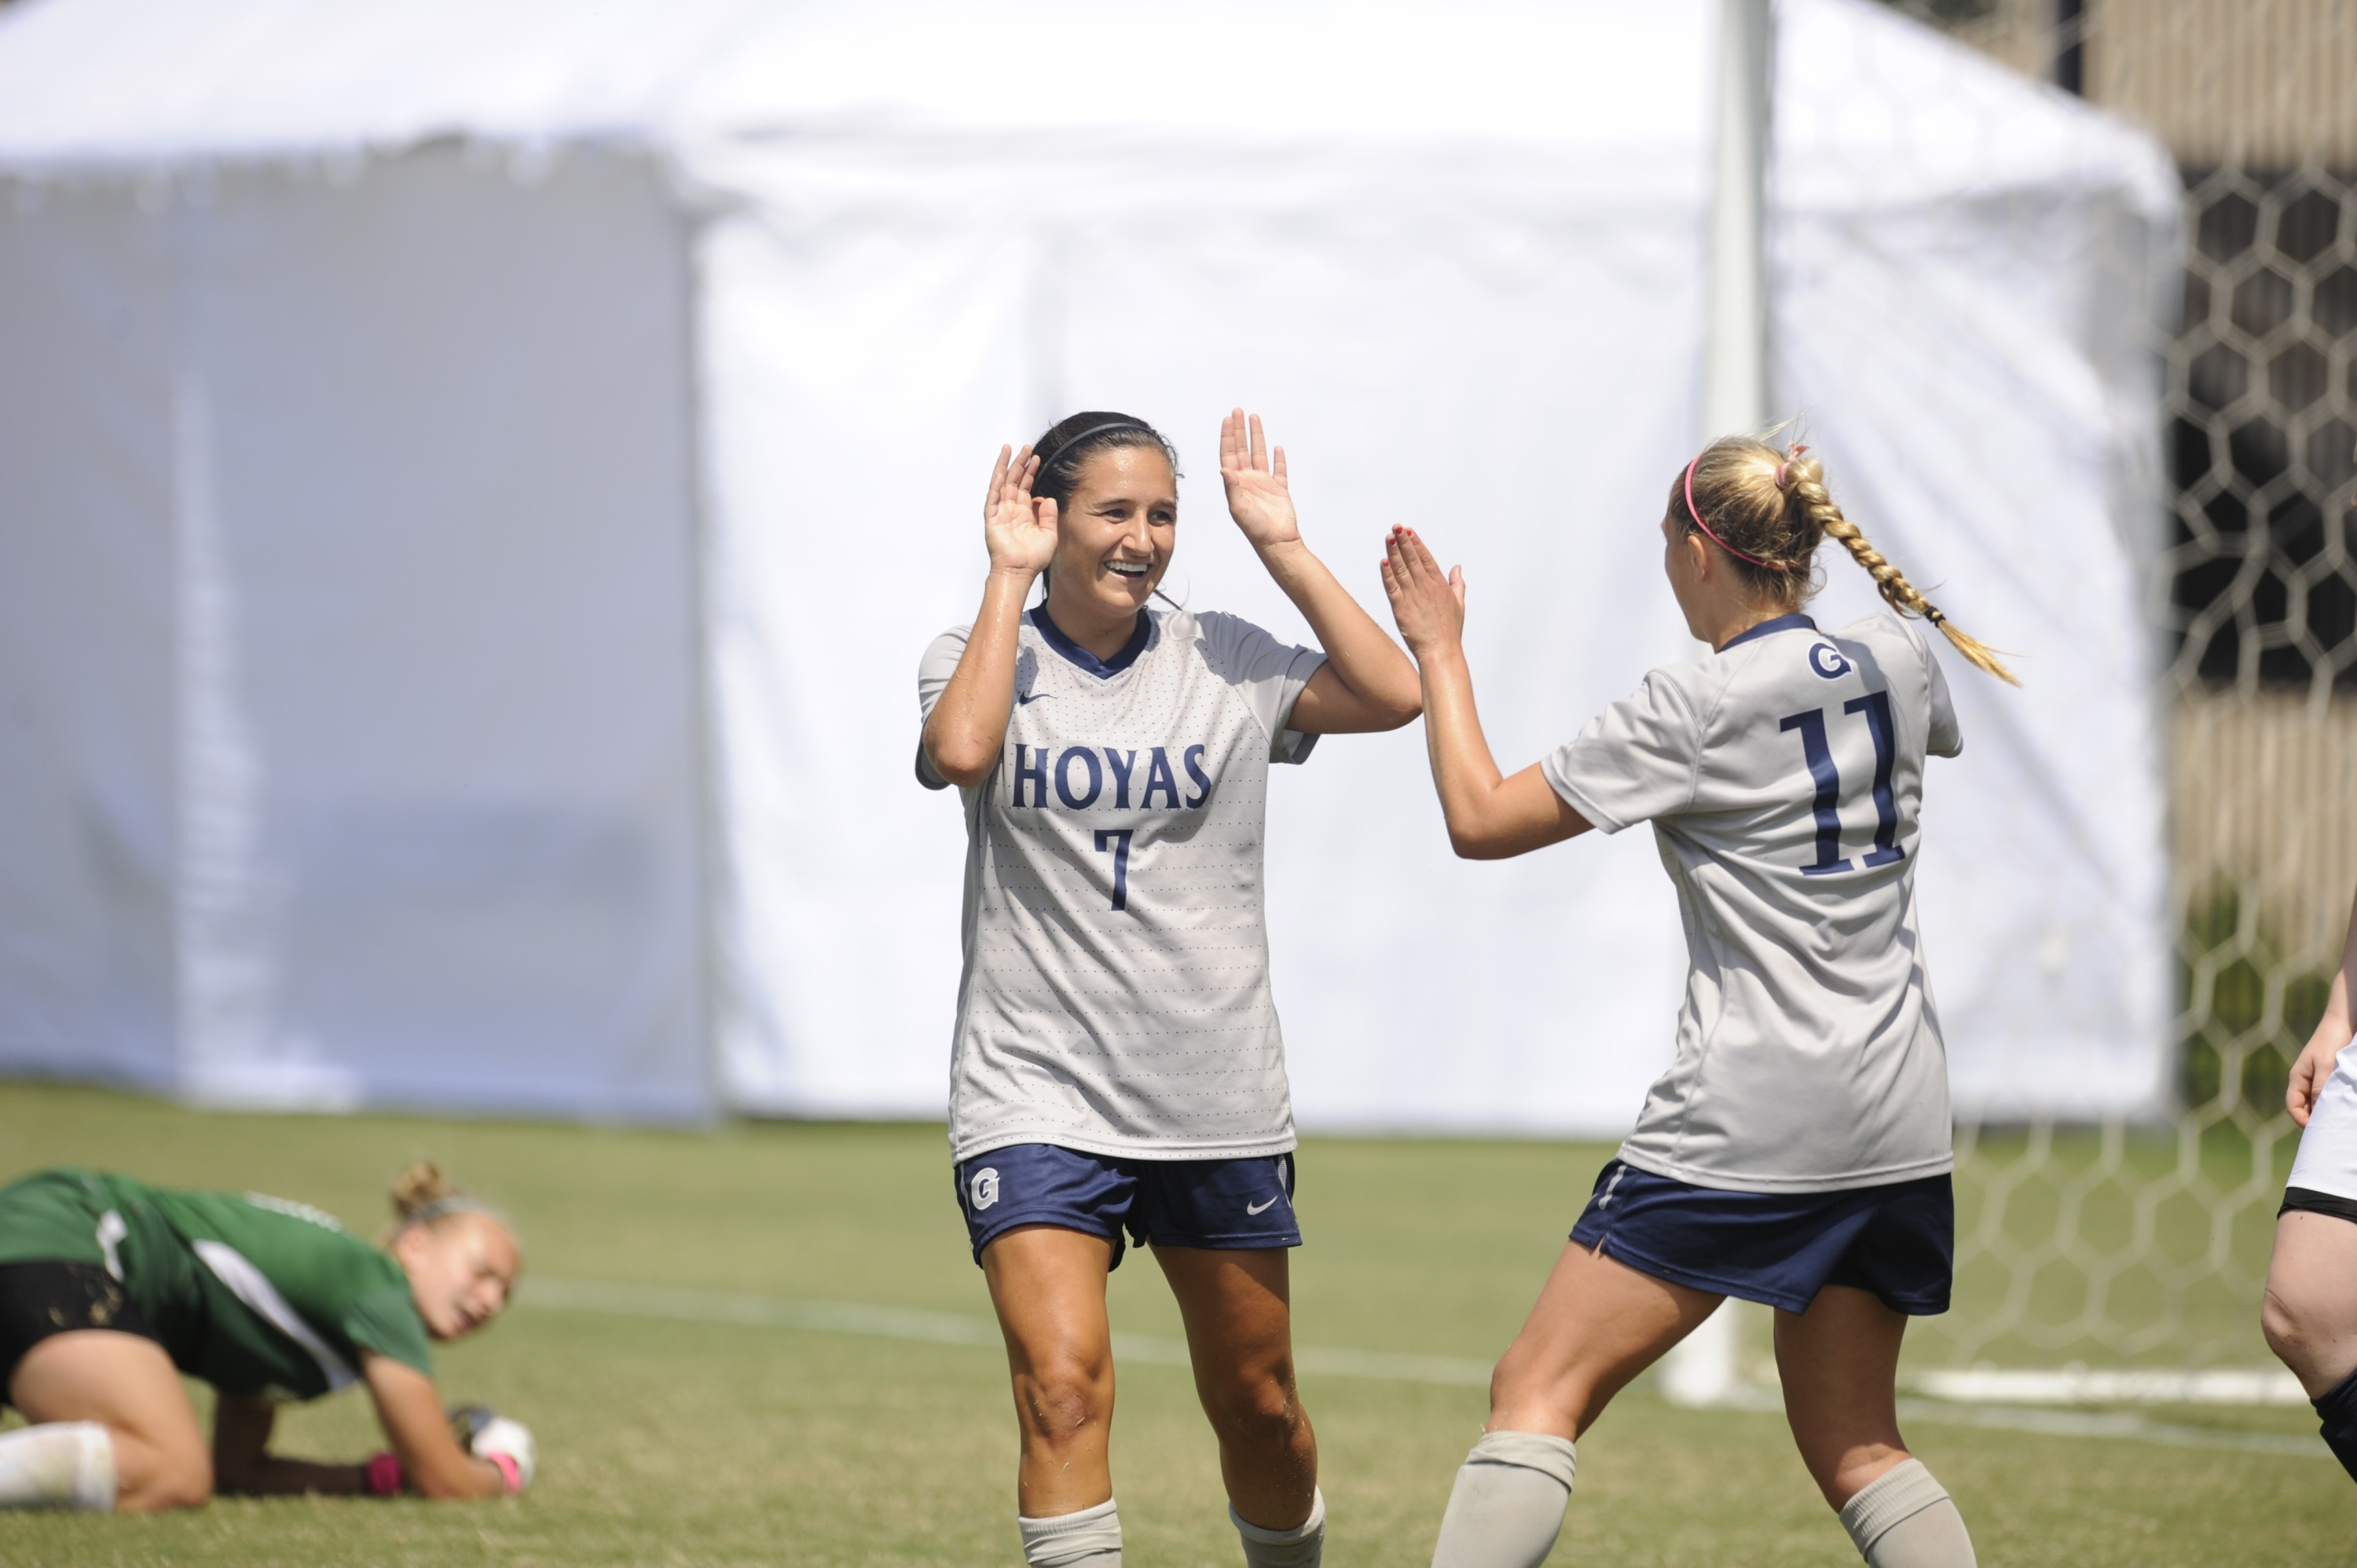 The 15th-ranked Georgetown University women's soccer team plays its home opener on Friday, Aug. 29, hosting North Carolina State on Shaw Field at 3 p.m.